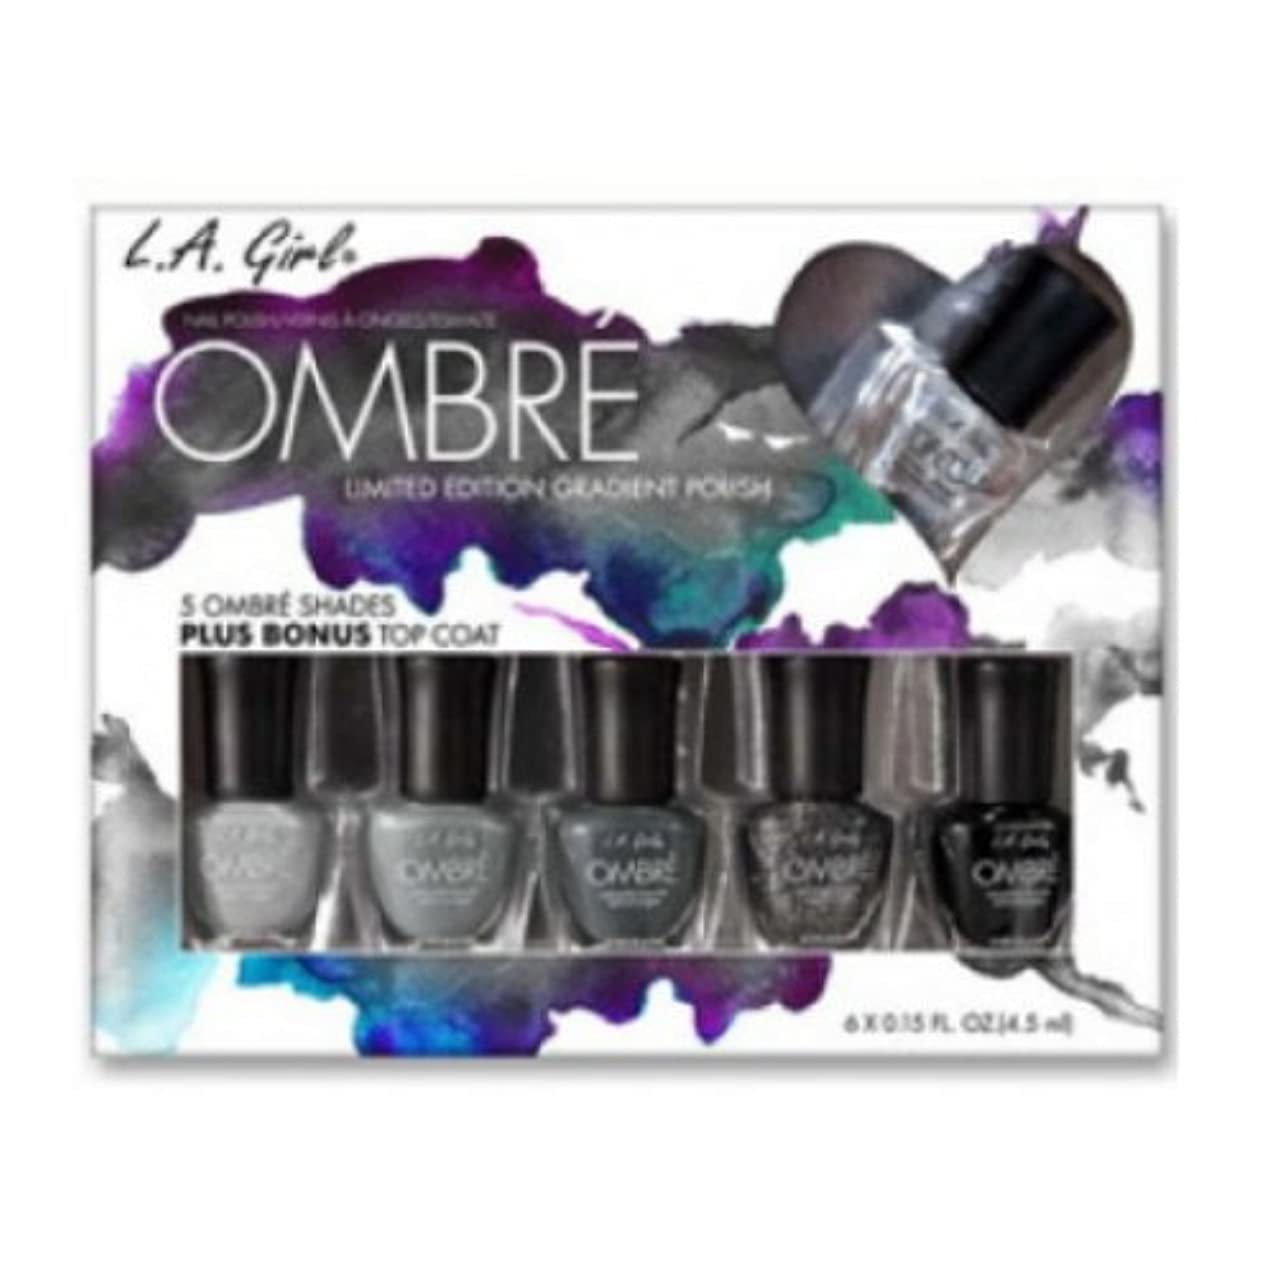 概念申し立てられた不満(3 Pack) L.A. GIRL Ombre Limited Edition Gradient Polish Set - Midnite (並行輸入品)